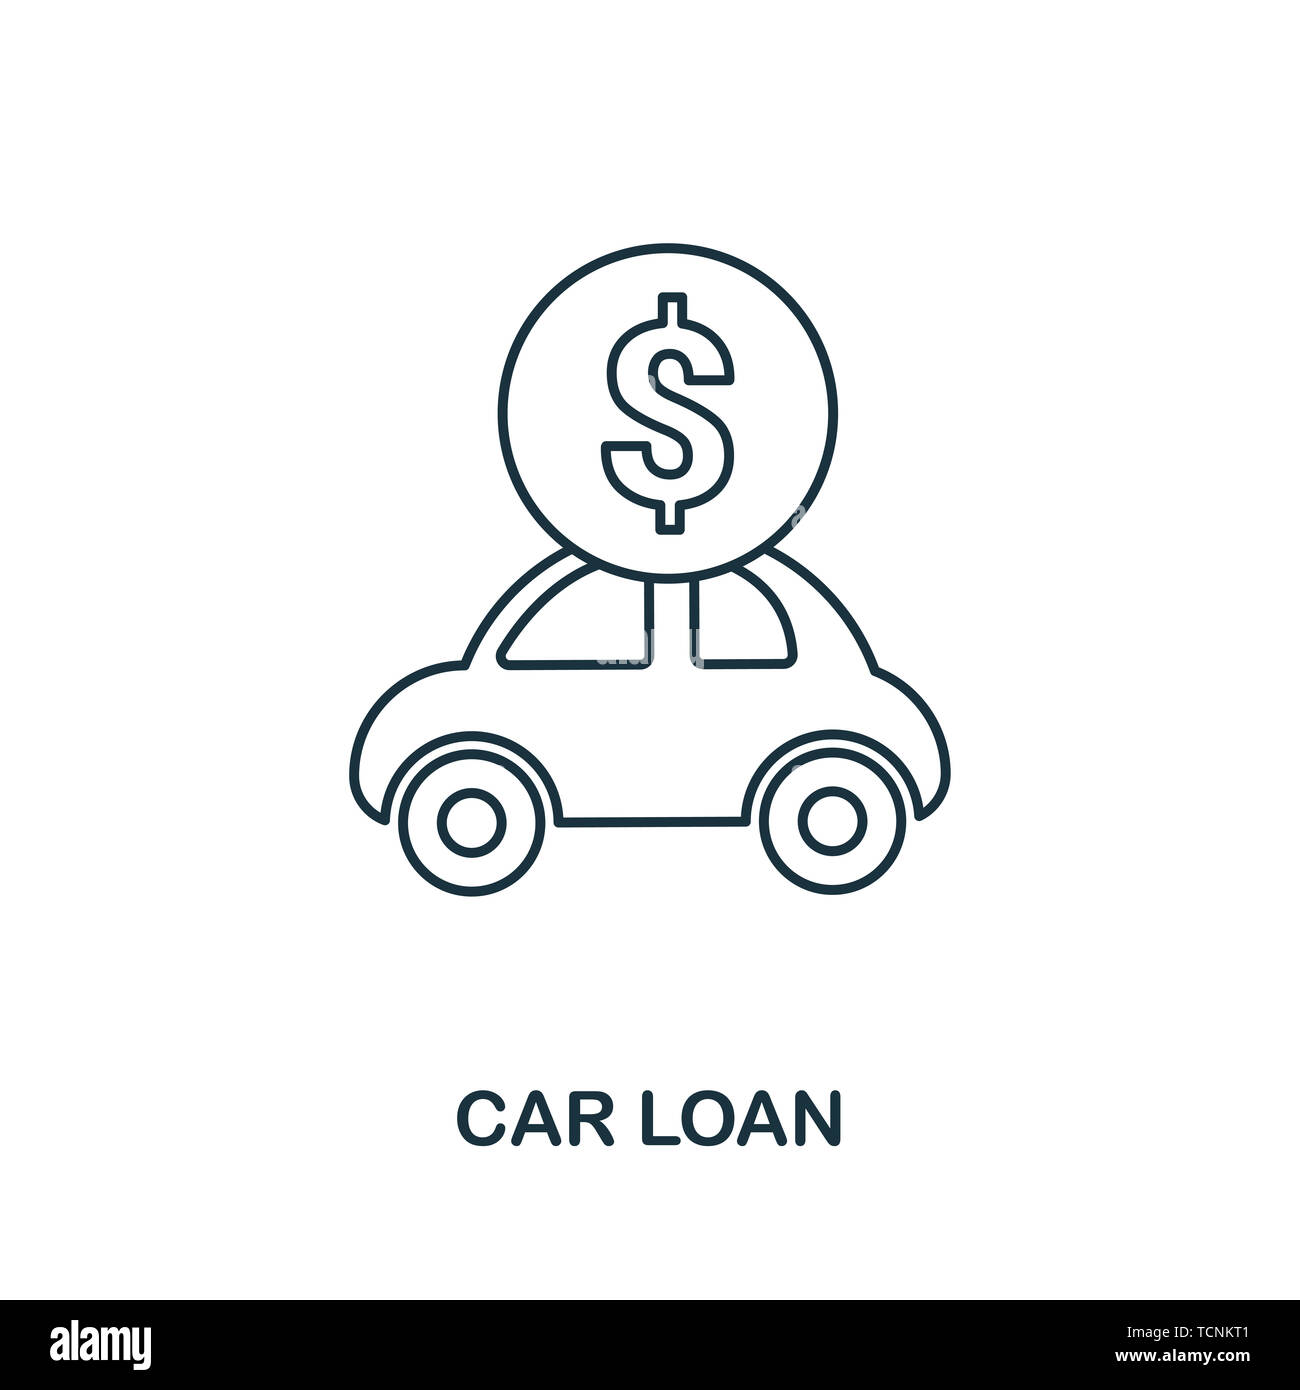 Car Loan outline icon. Thin line style icons from personal finance icon collection. Web design, apps, software and printing usage simple car loan icon Stock Photo